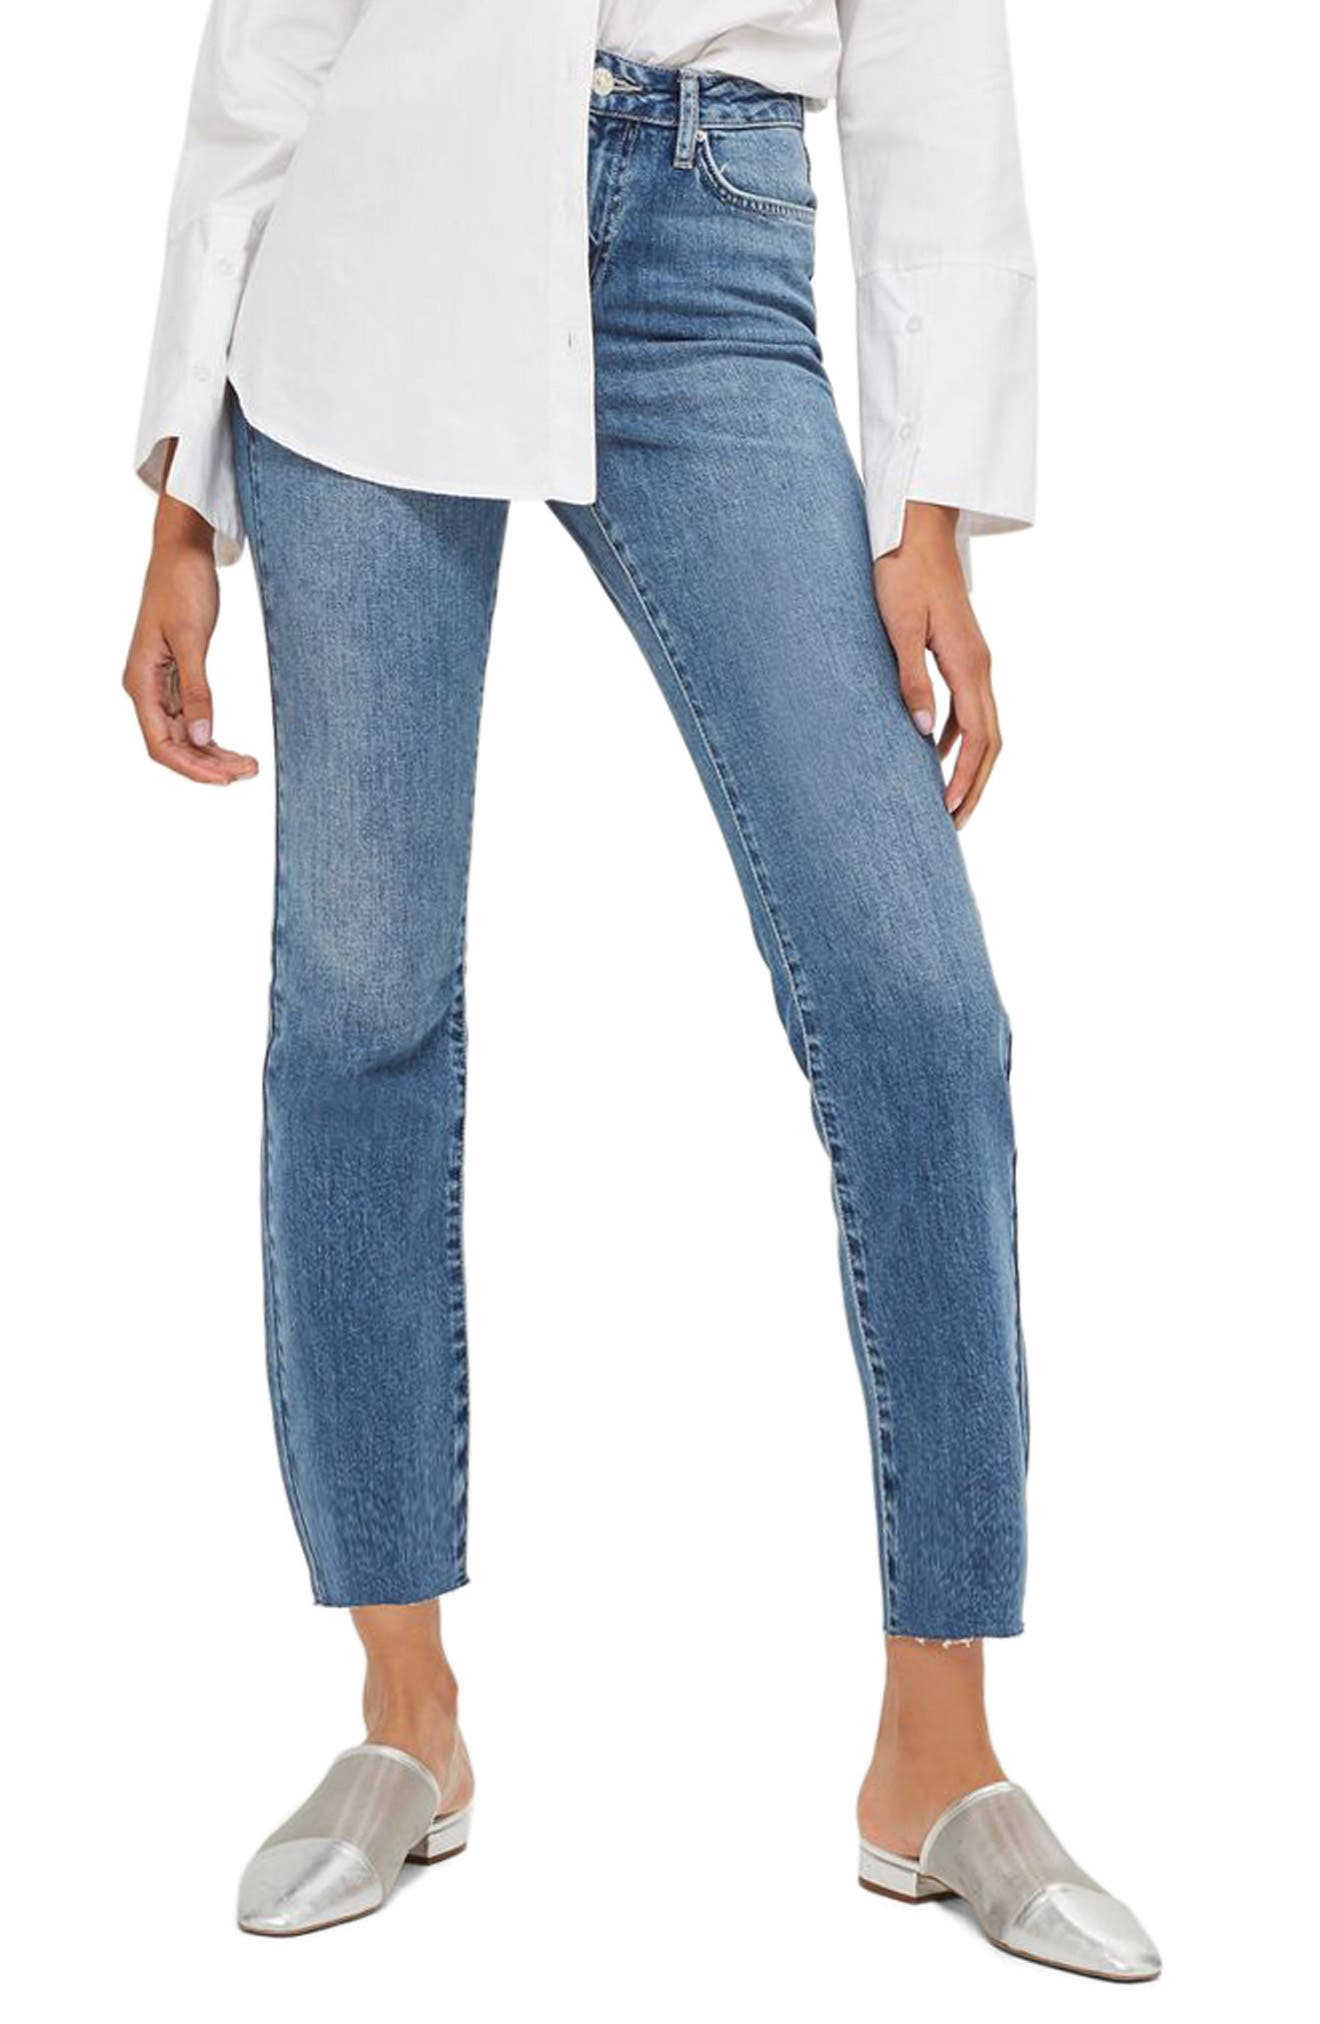 Alternate Image 1 Selected - Topshop Dree Raw Hem Crop Flare Jeans (Tall)